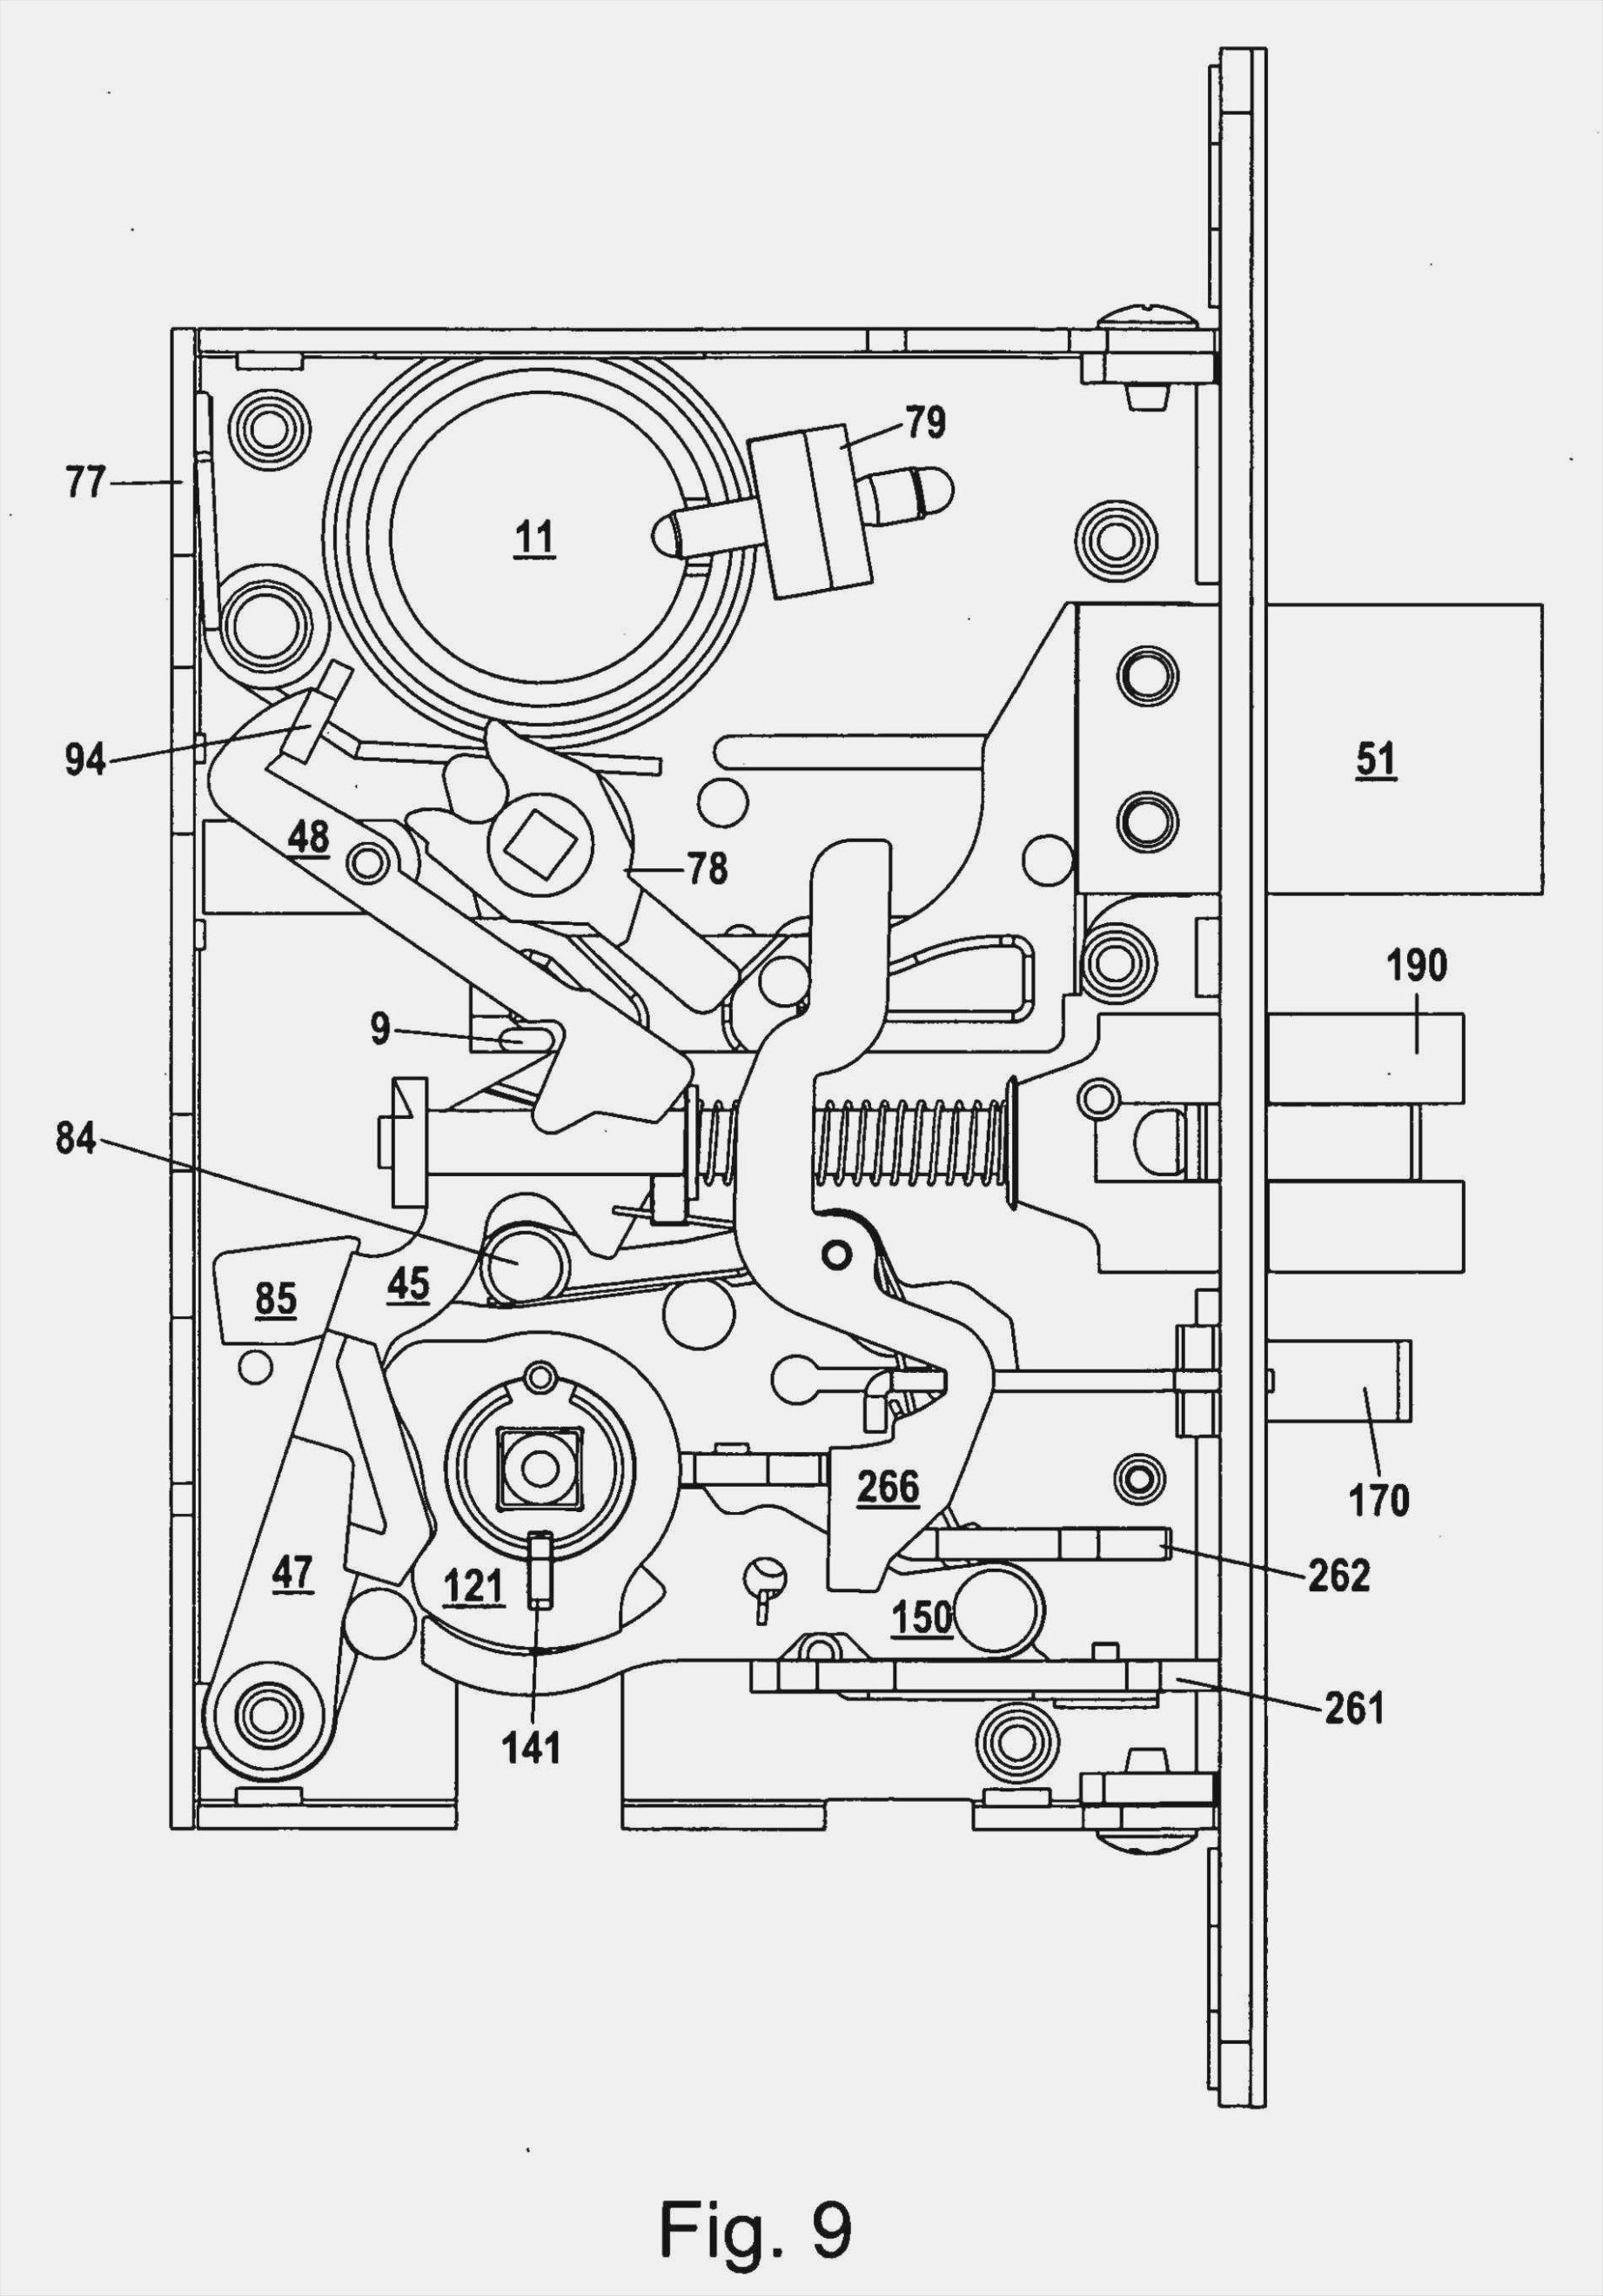 hight resolution of door lock parts diagram handle mortise lock diagram data wiring mortise lock parts door lock parts